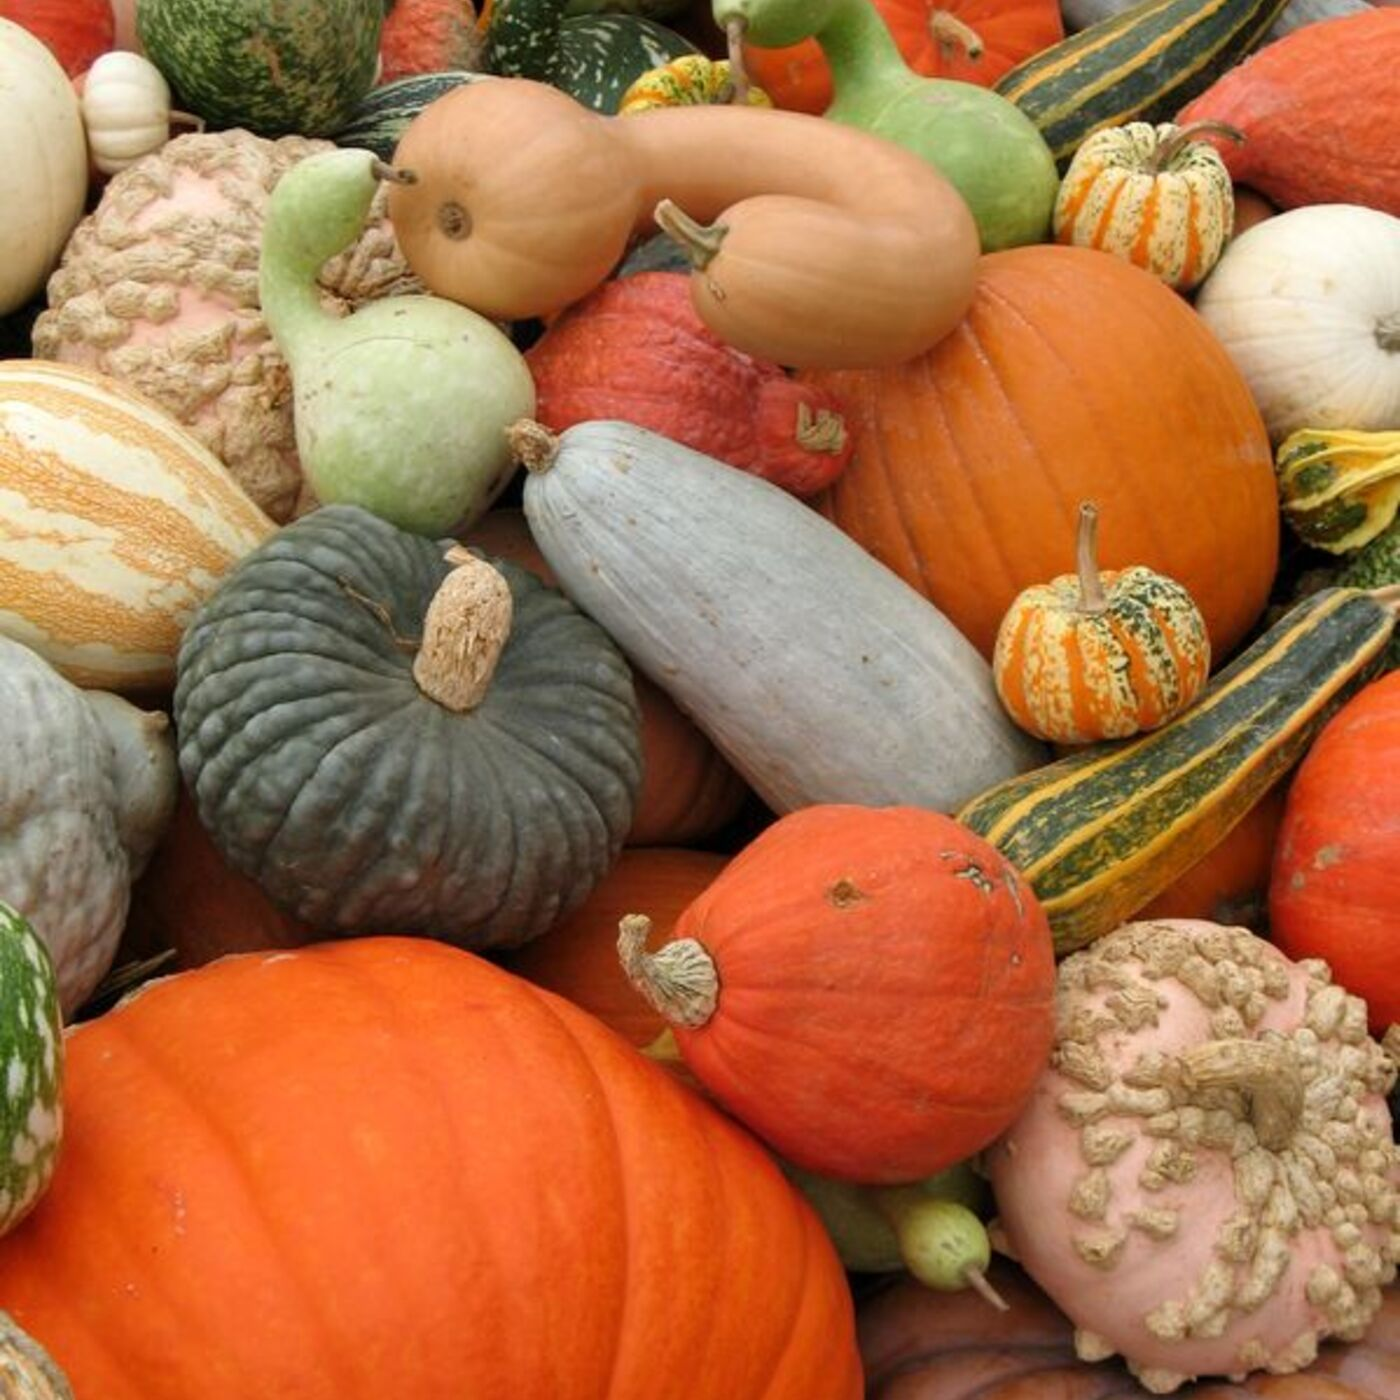 Home Canning Your Fall Pumpkins and Winter Squash